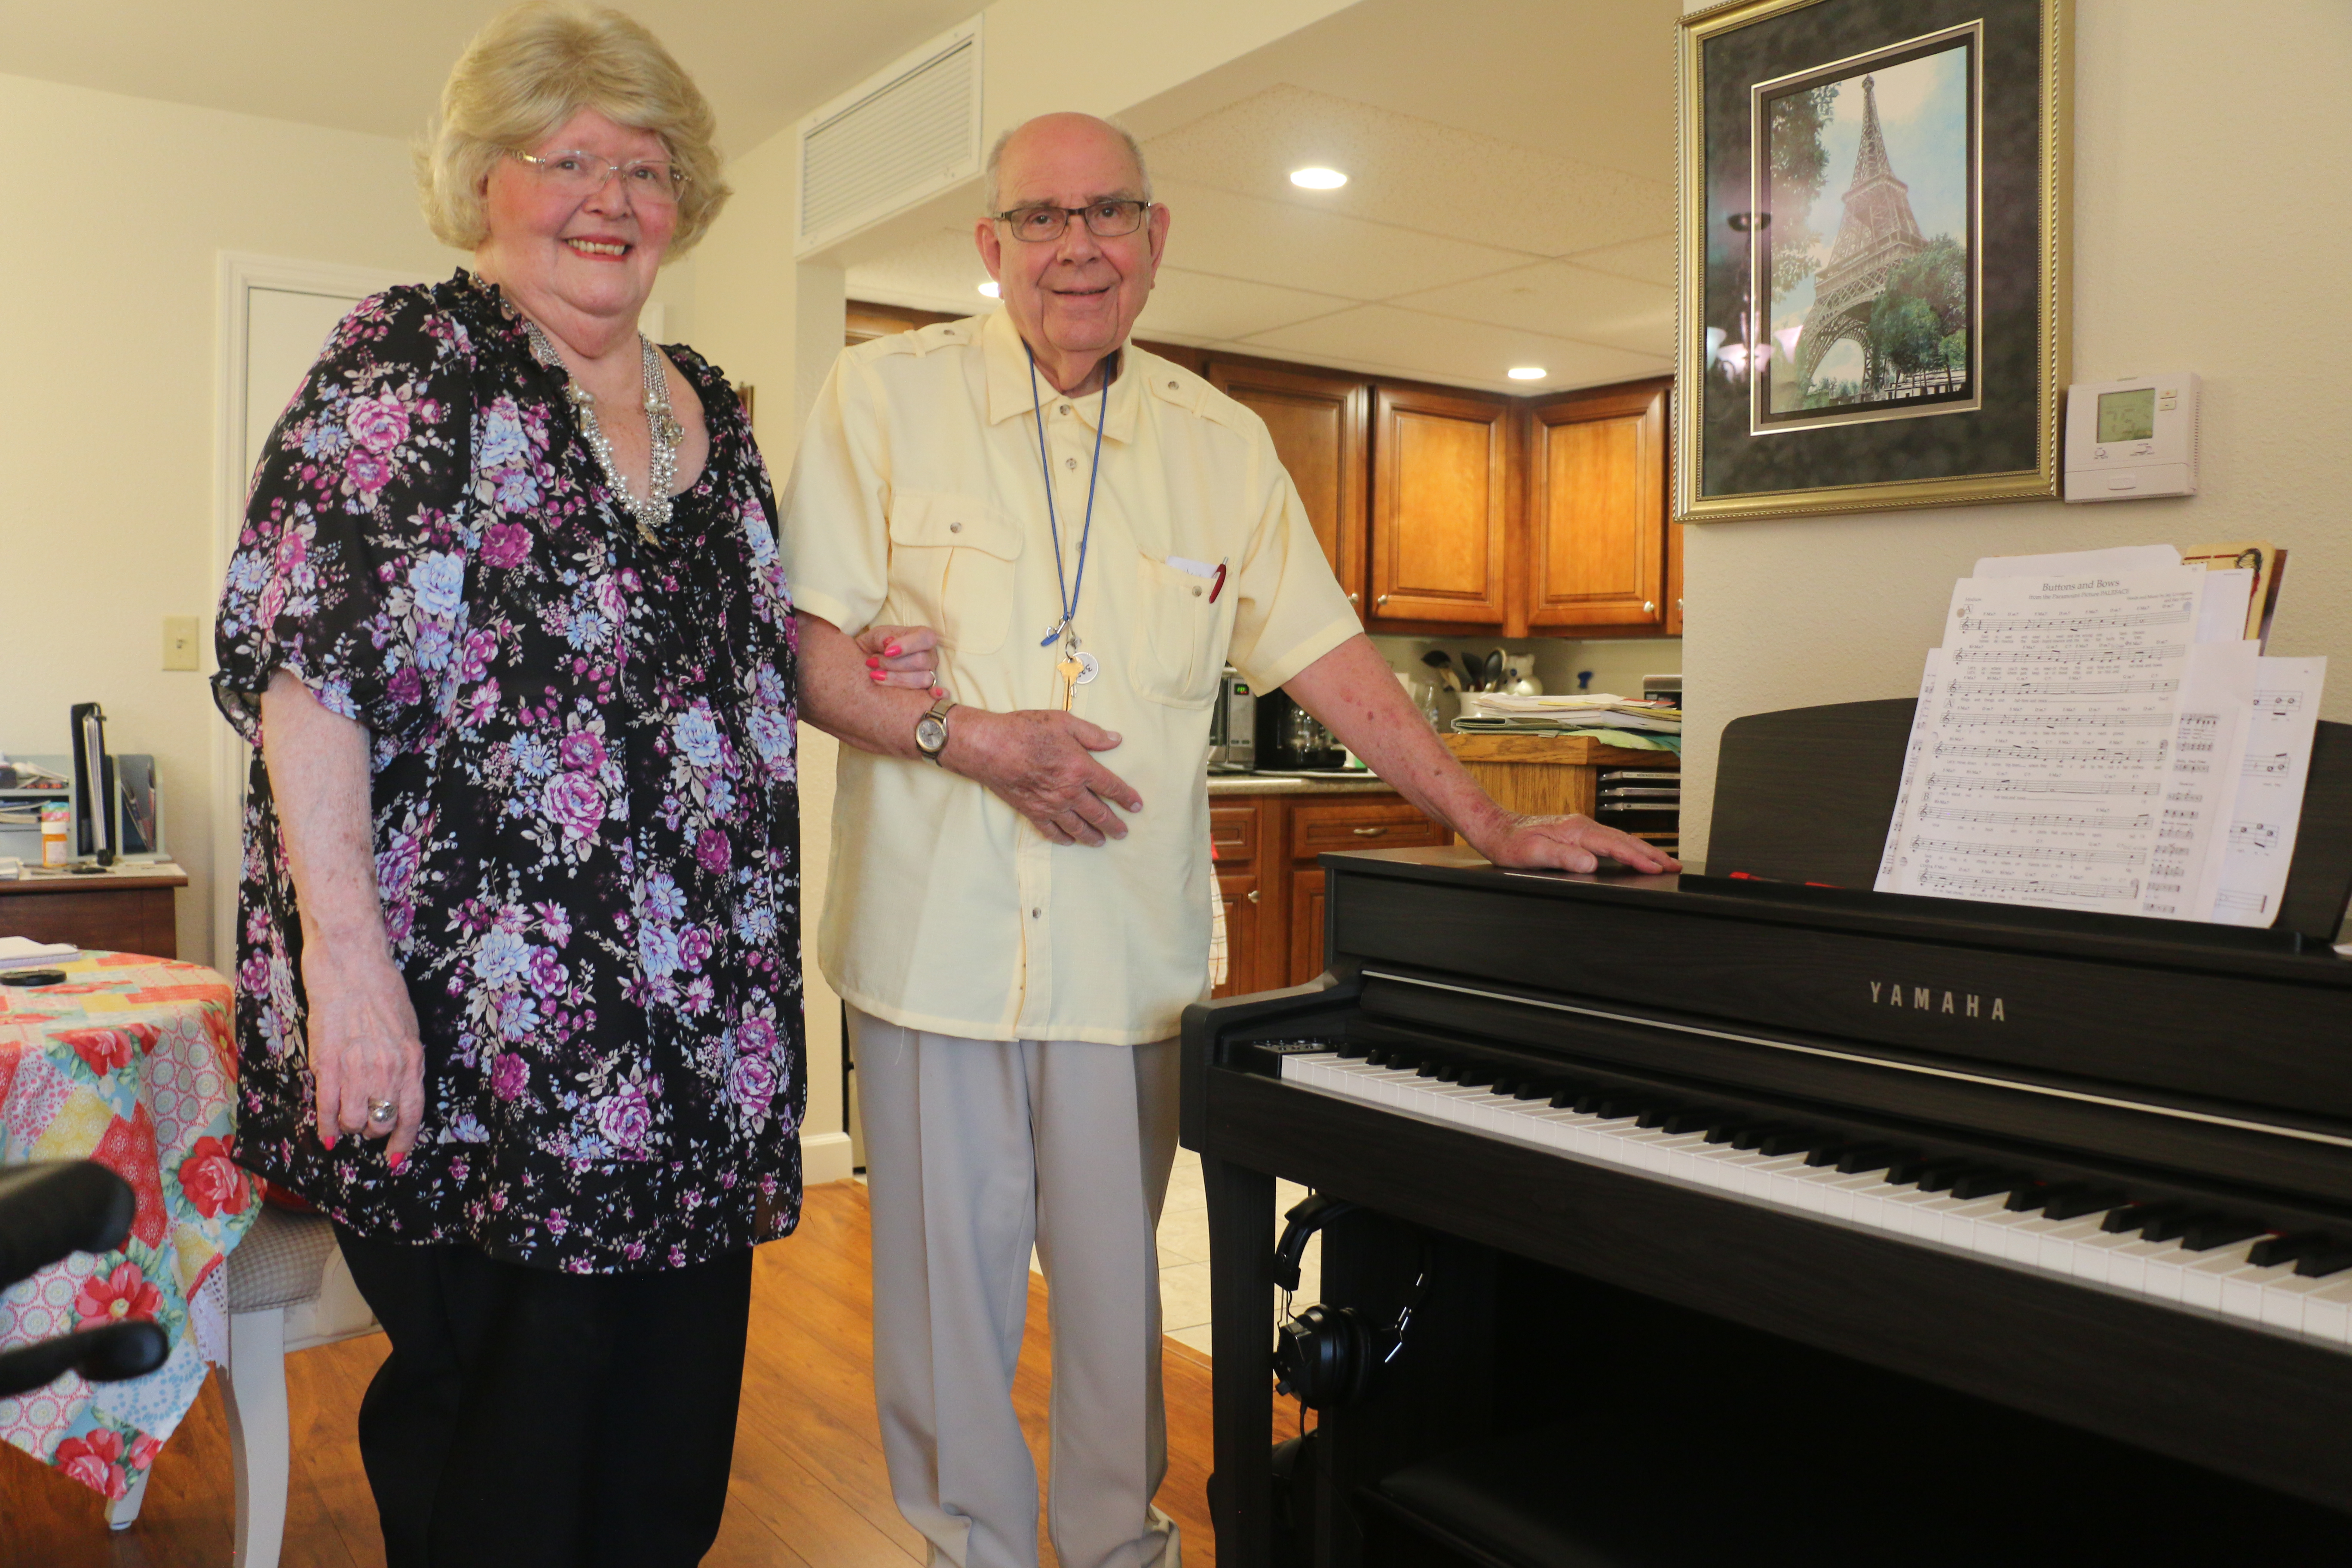 Jim and Judy Thielker, next to their piano in their apartment at Bethesda Terrace, an independent living community in St. Louis.